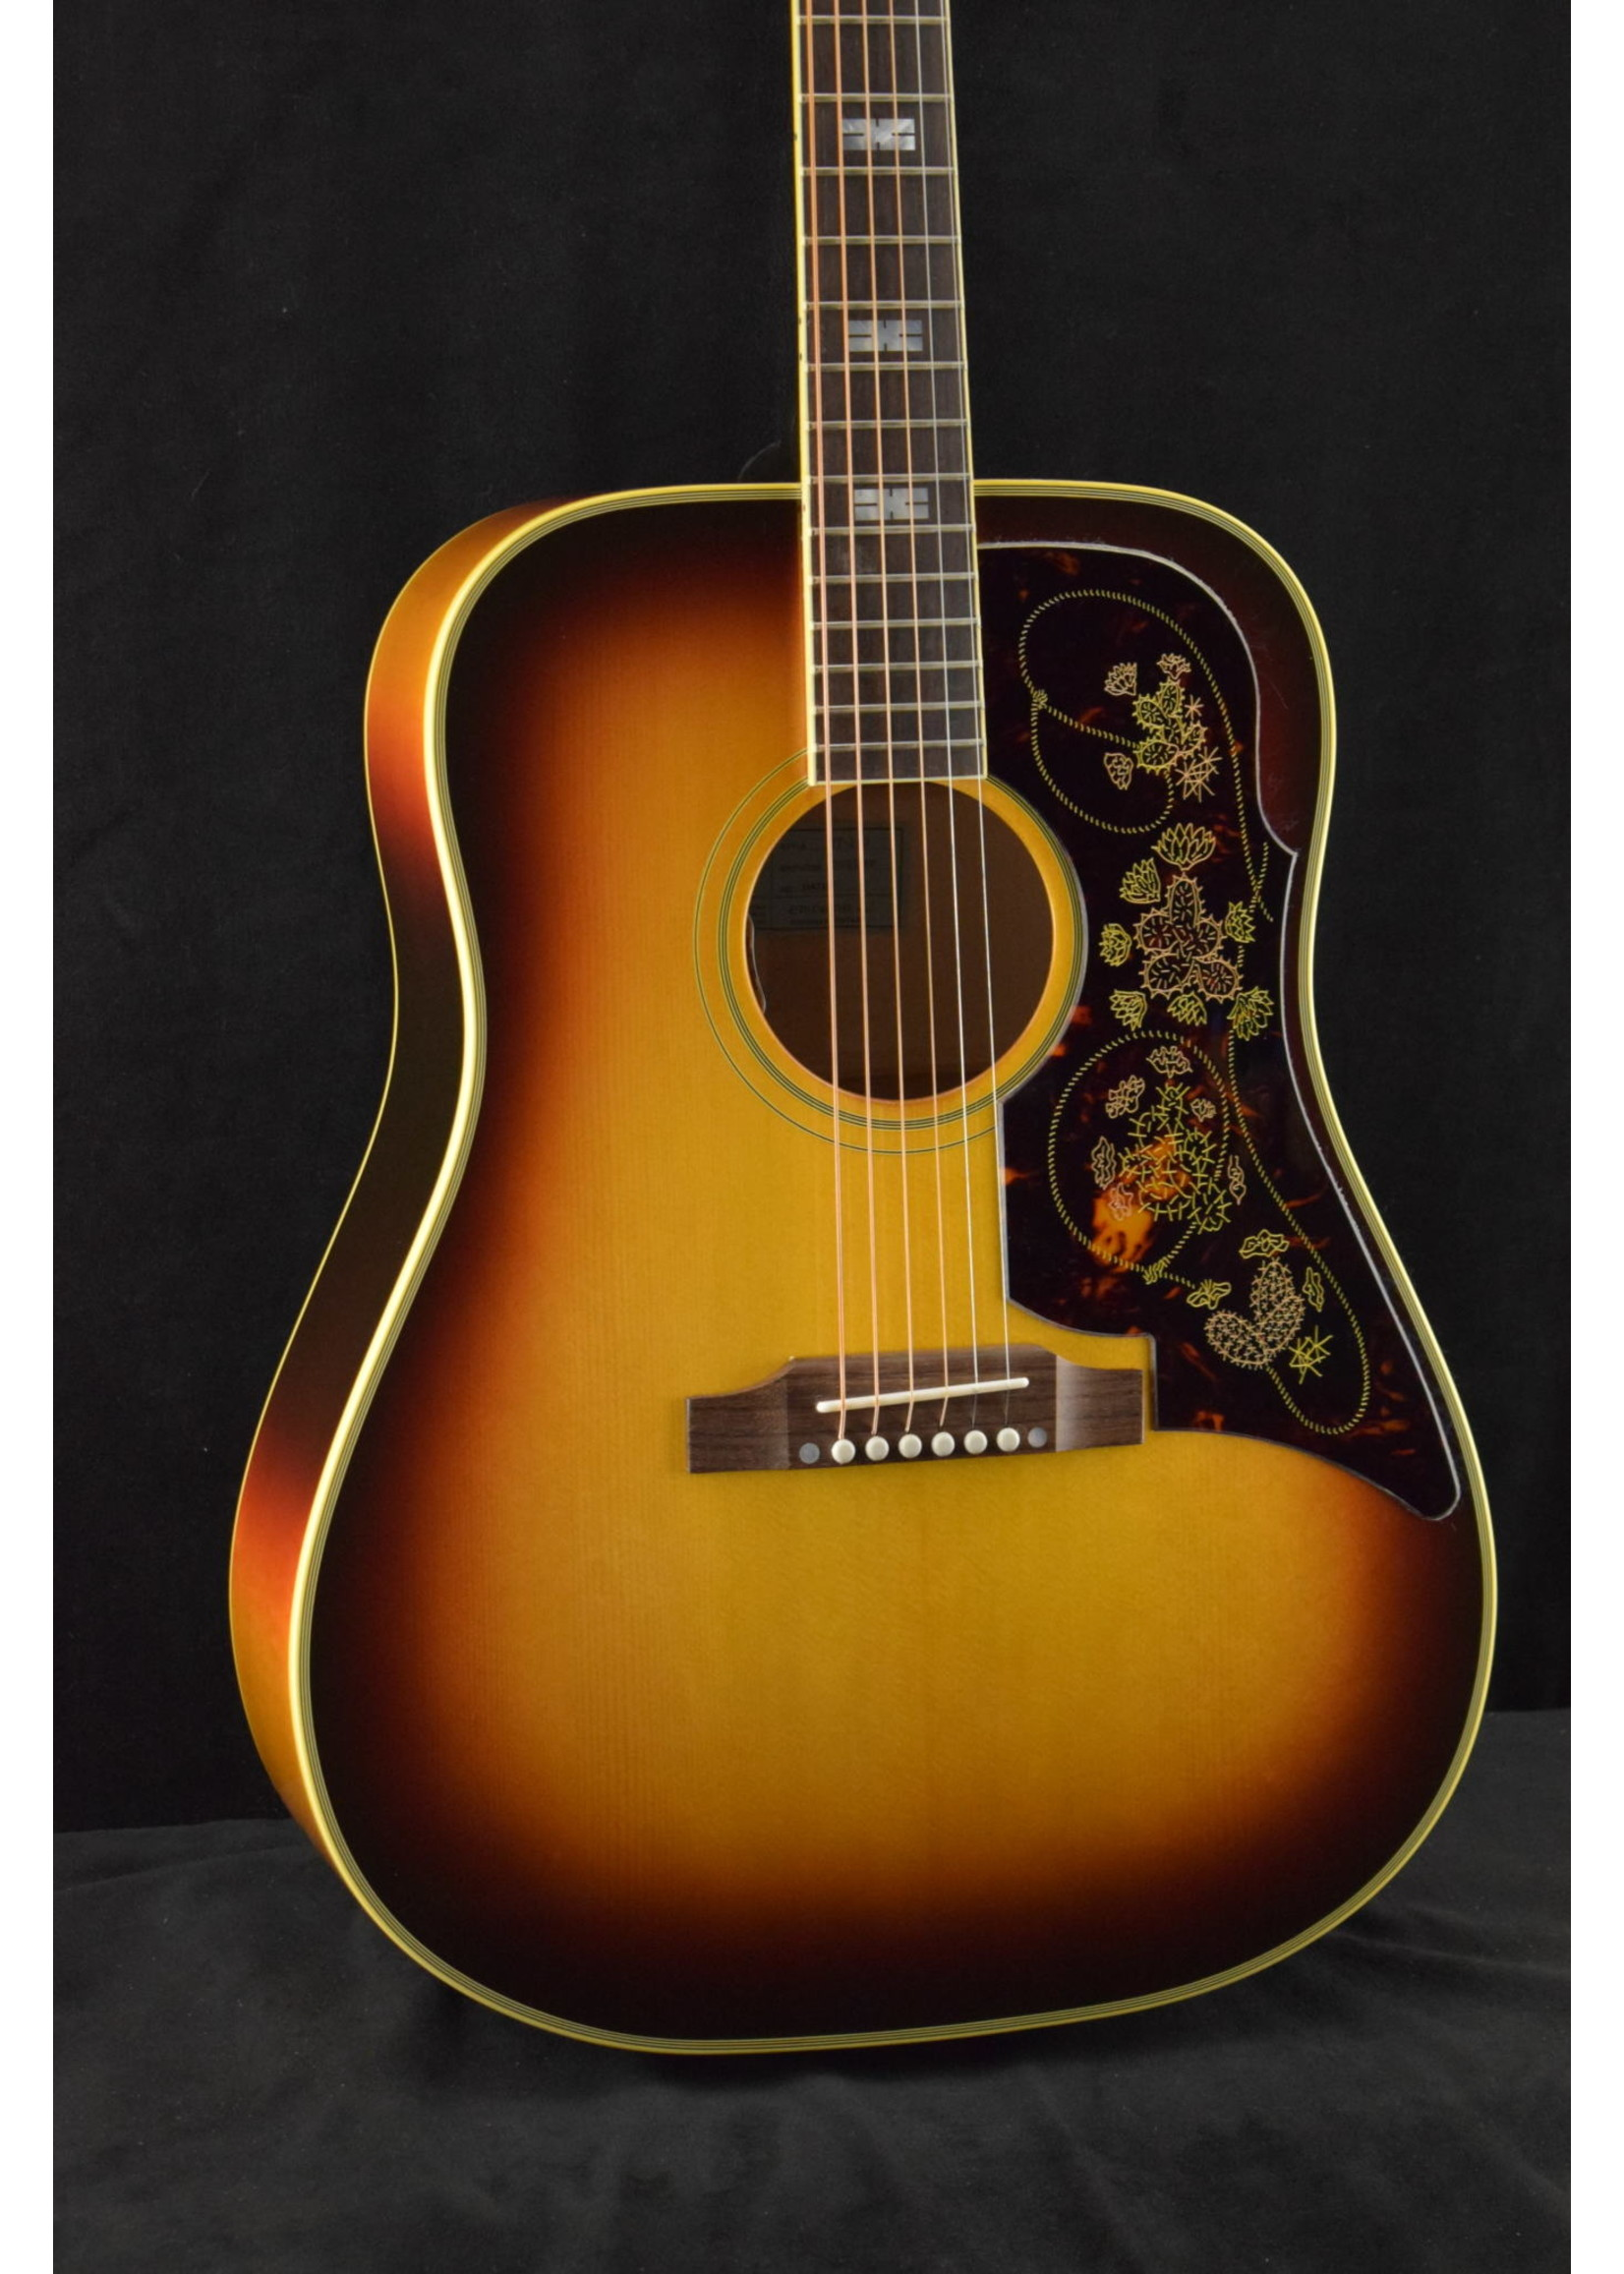 Epiphone Epiphone Frontier (USA Collection) FT-110 Frontier Burst